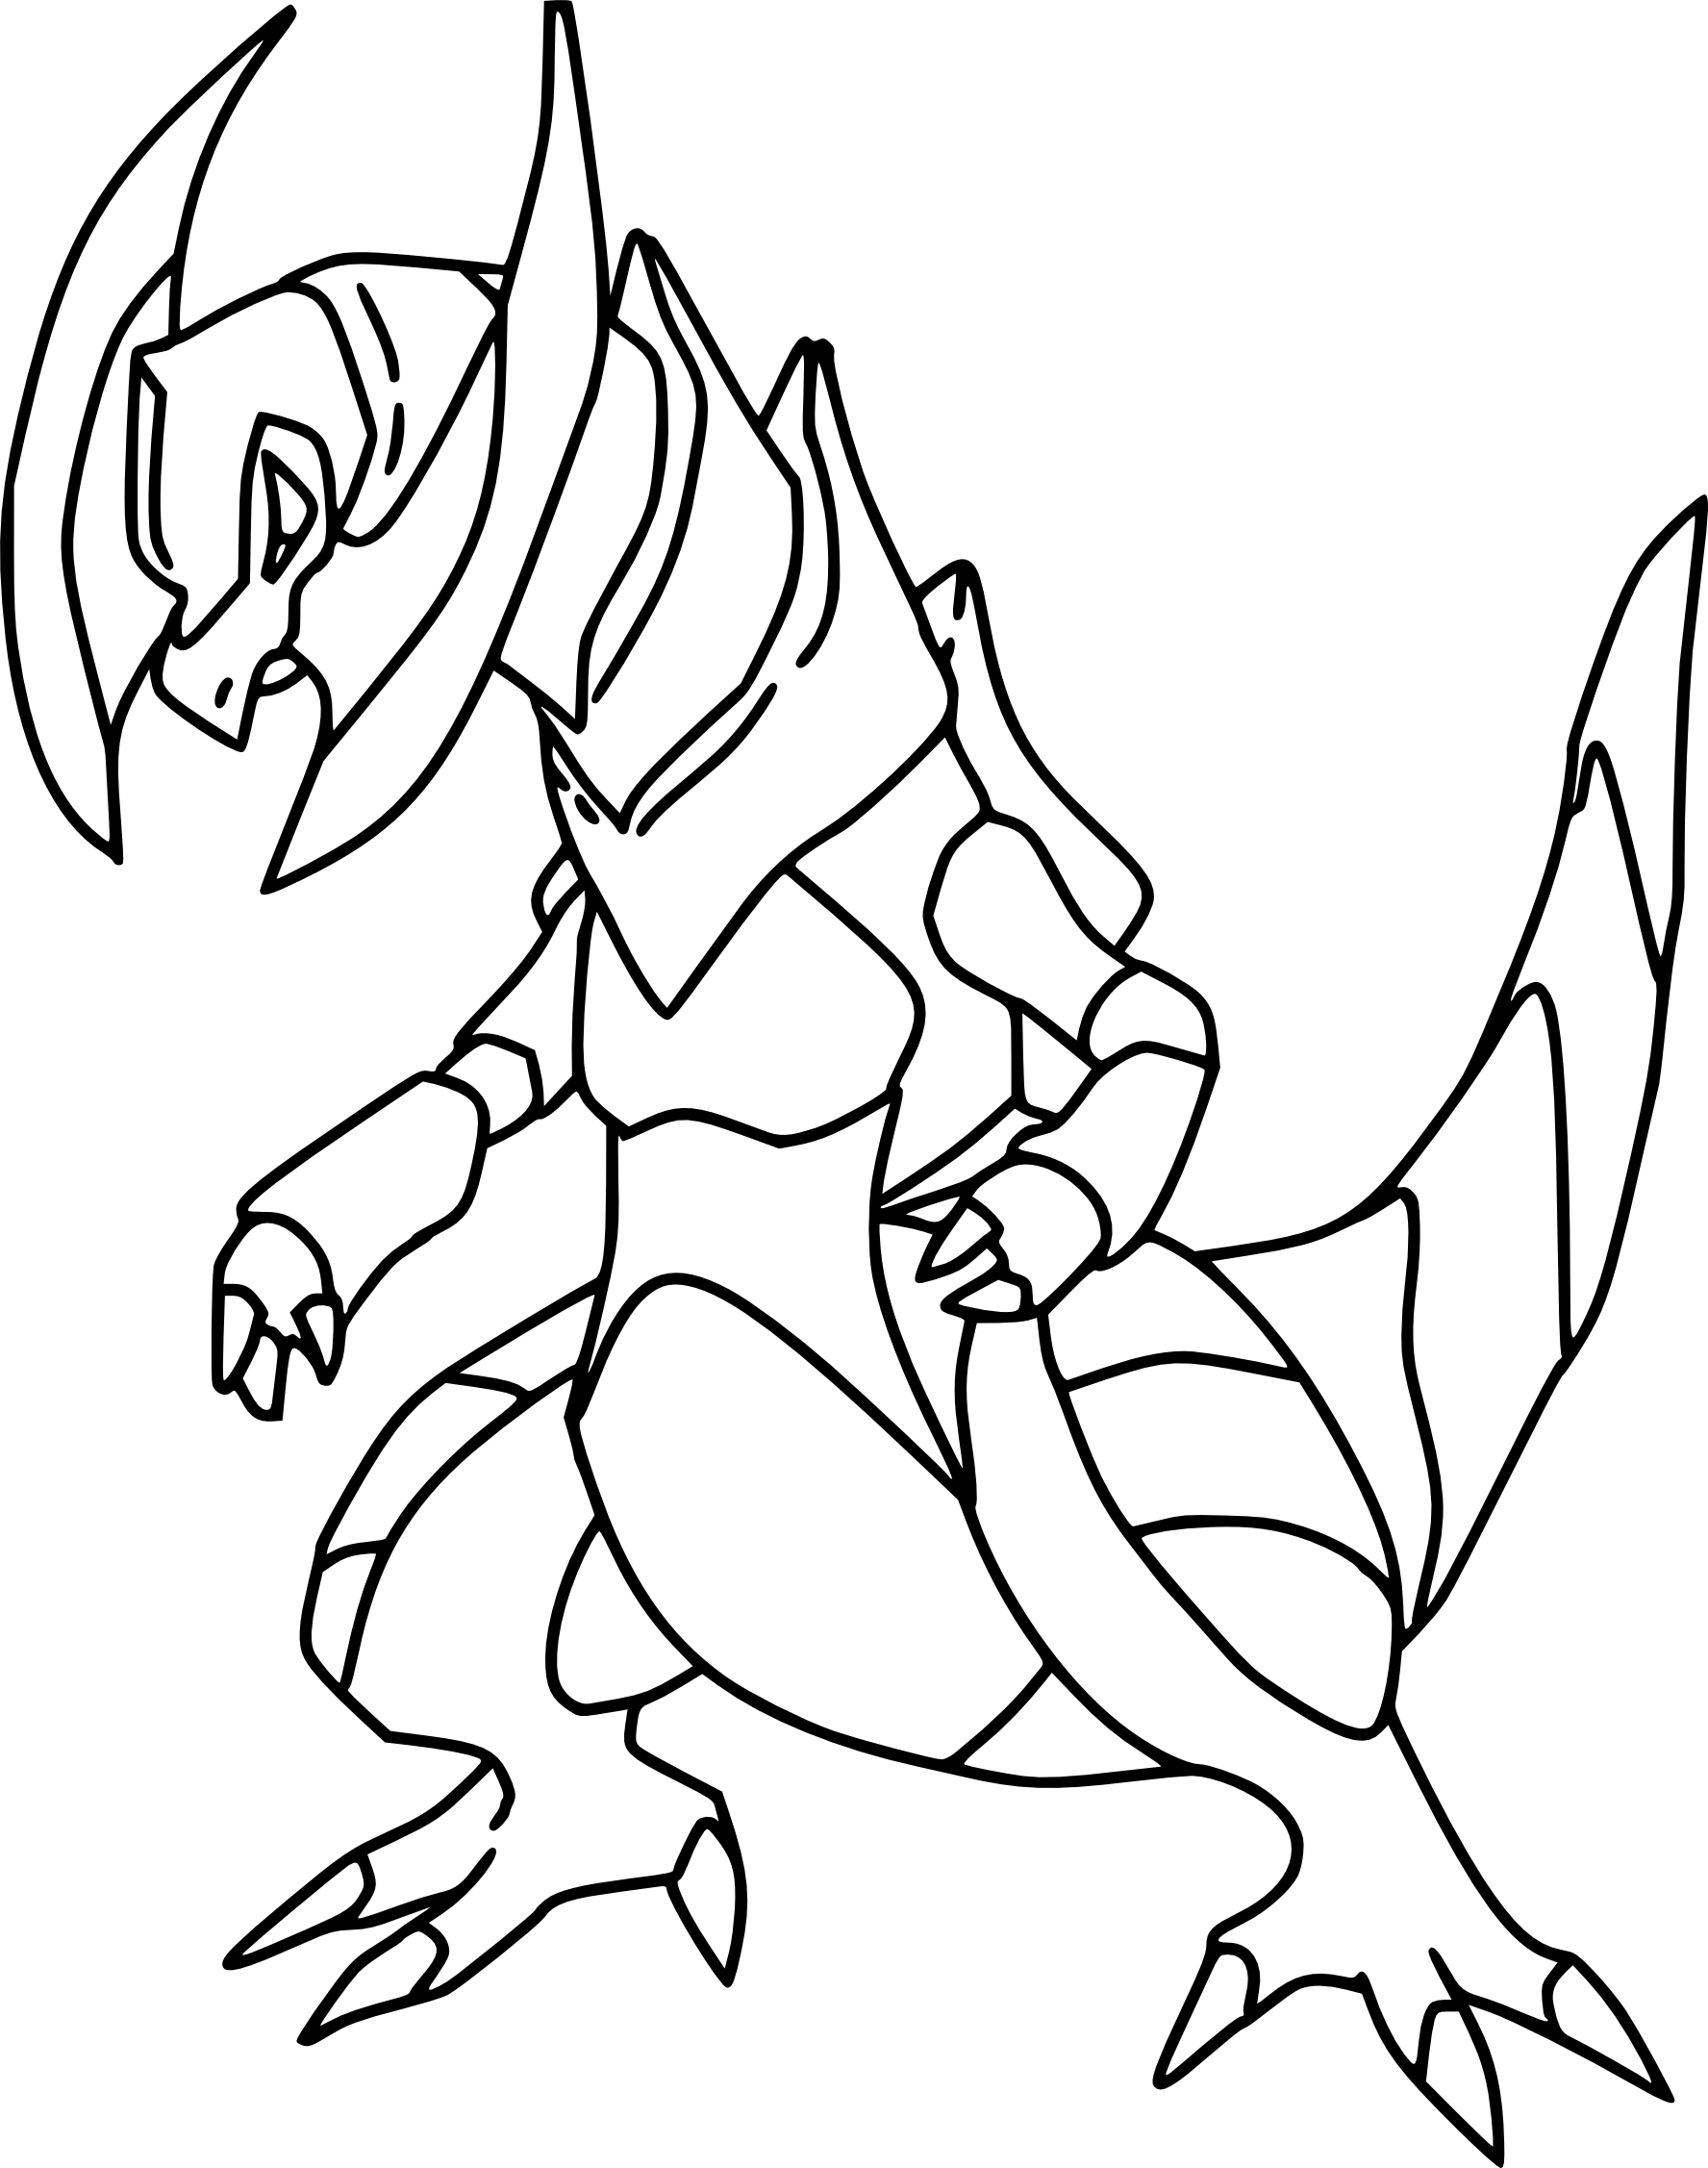 pokemon lucario coloring pages pokemon lucario coloring pages download and print for free pages pokemon coloring lucario